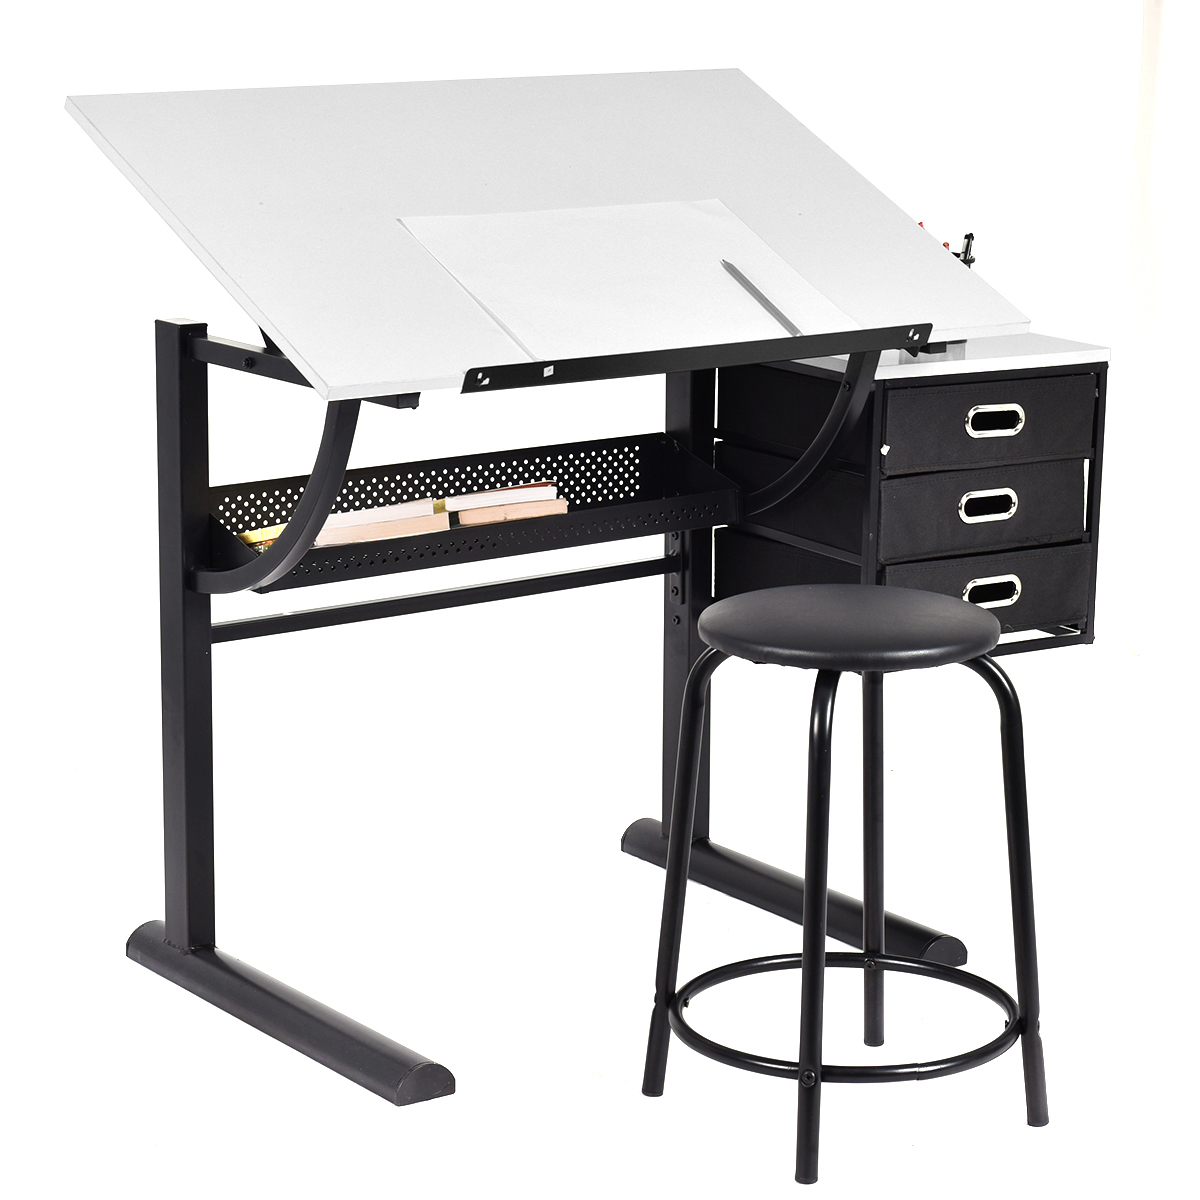 Attractive Costway Drafting Table Art U0026 Craft Drawing Desk Art Hobby Folding  Adjustable W/ Stool